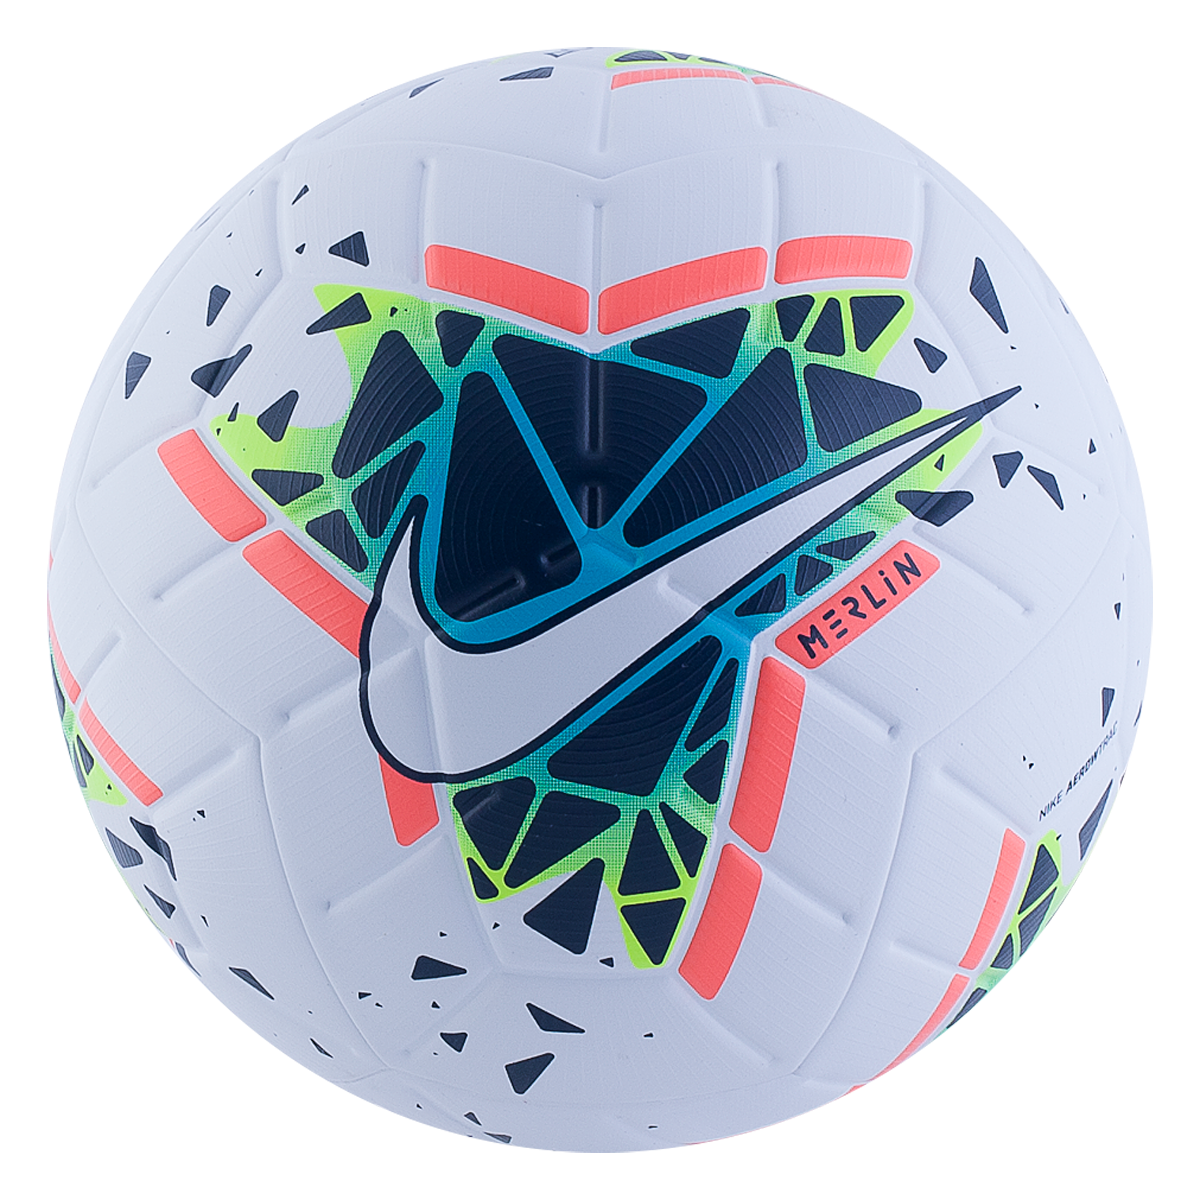 Photography Sports Photography Volleyball Pictures Soccer Ball Volleyball Shirts Volleyball Setter Nike Merlin Socc In 2020 Soccer Ball World Soccer Shop Football Ball